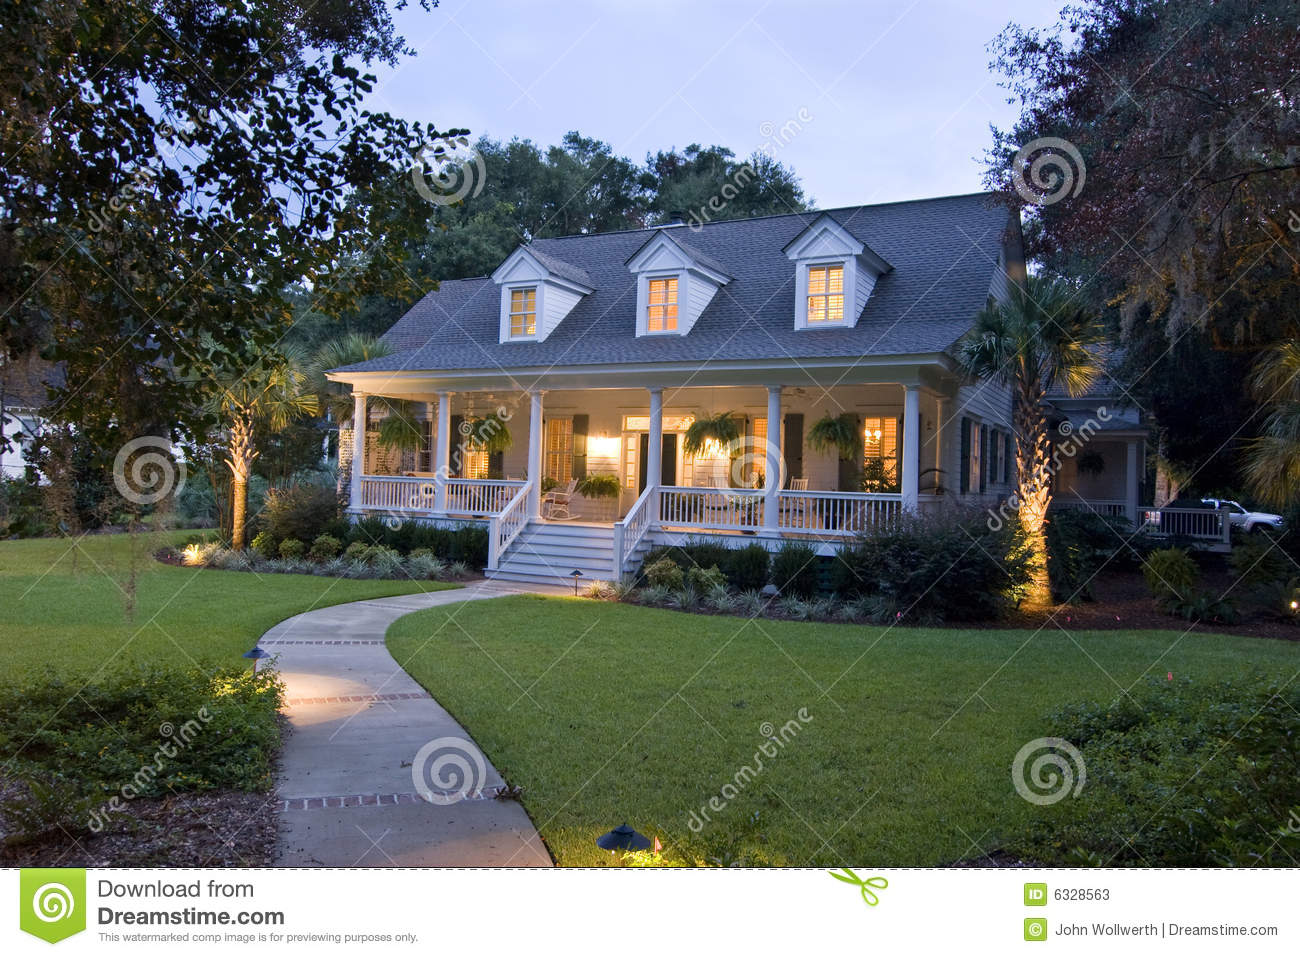 Cape cod house at twilight stock image image of house for Twilight house price